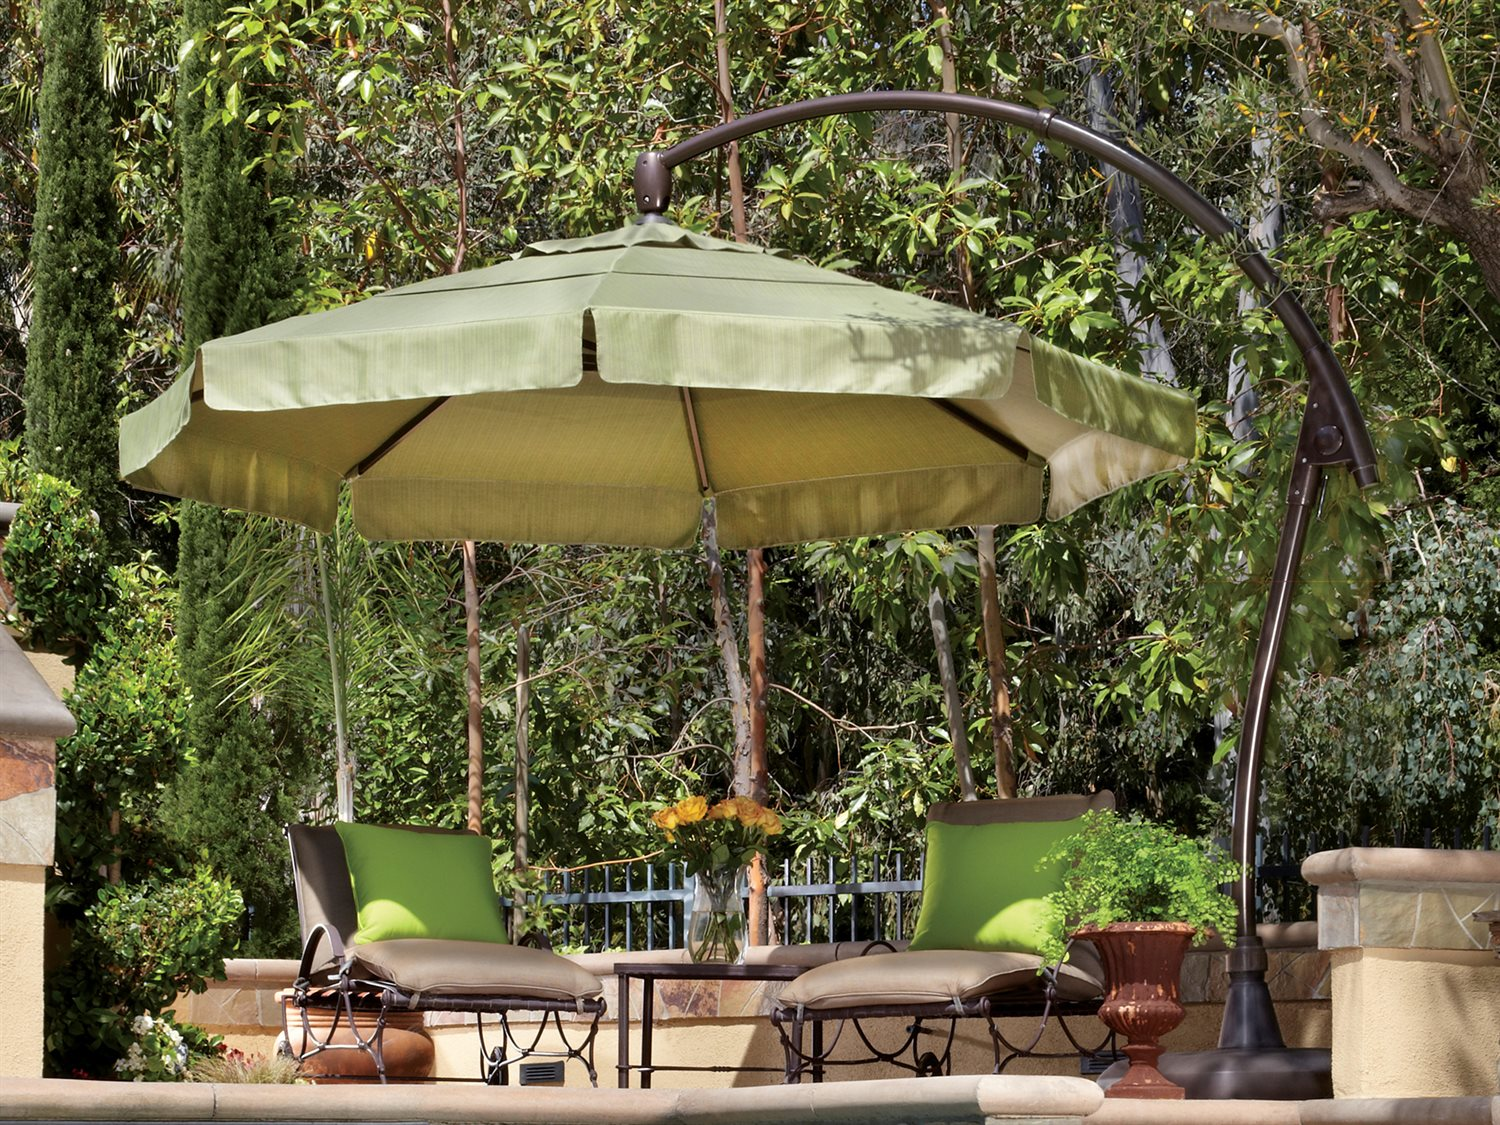 Garden Treasures Offset Umbrella | Patio Umbrella Replacement Canopy | Large Outdoor Umbrella